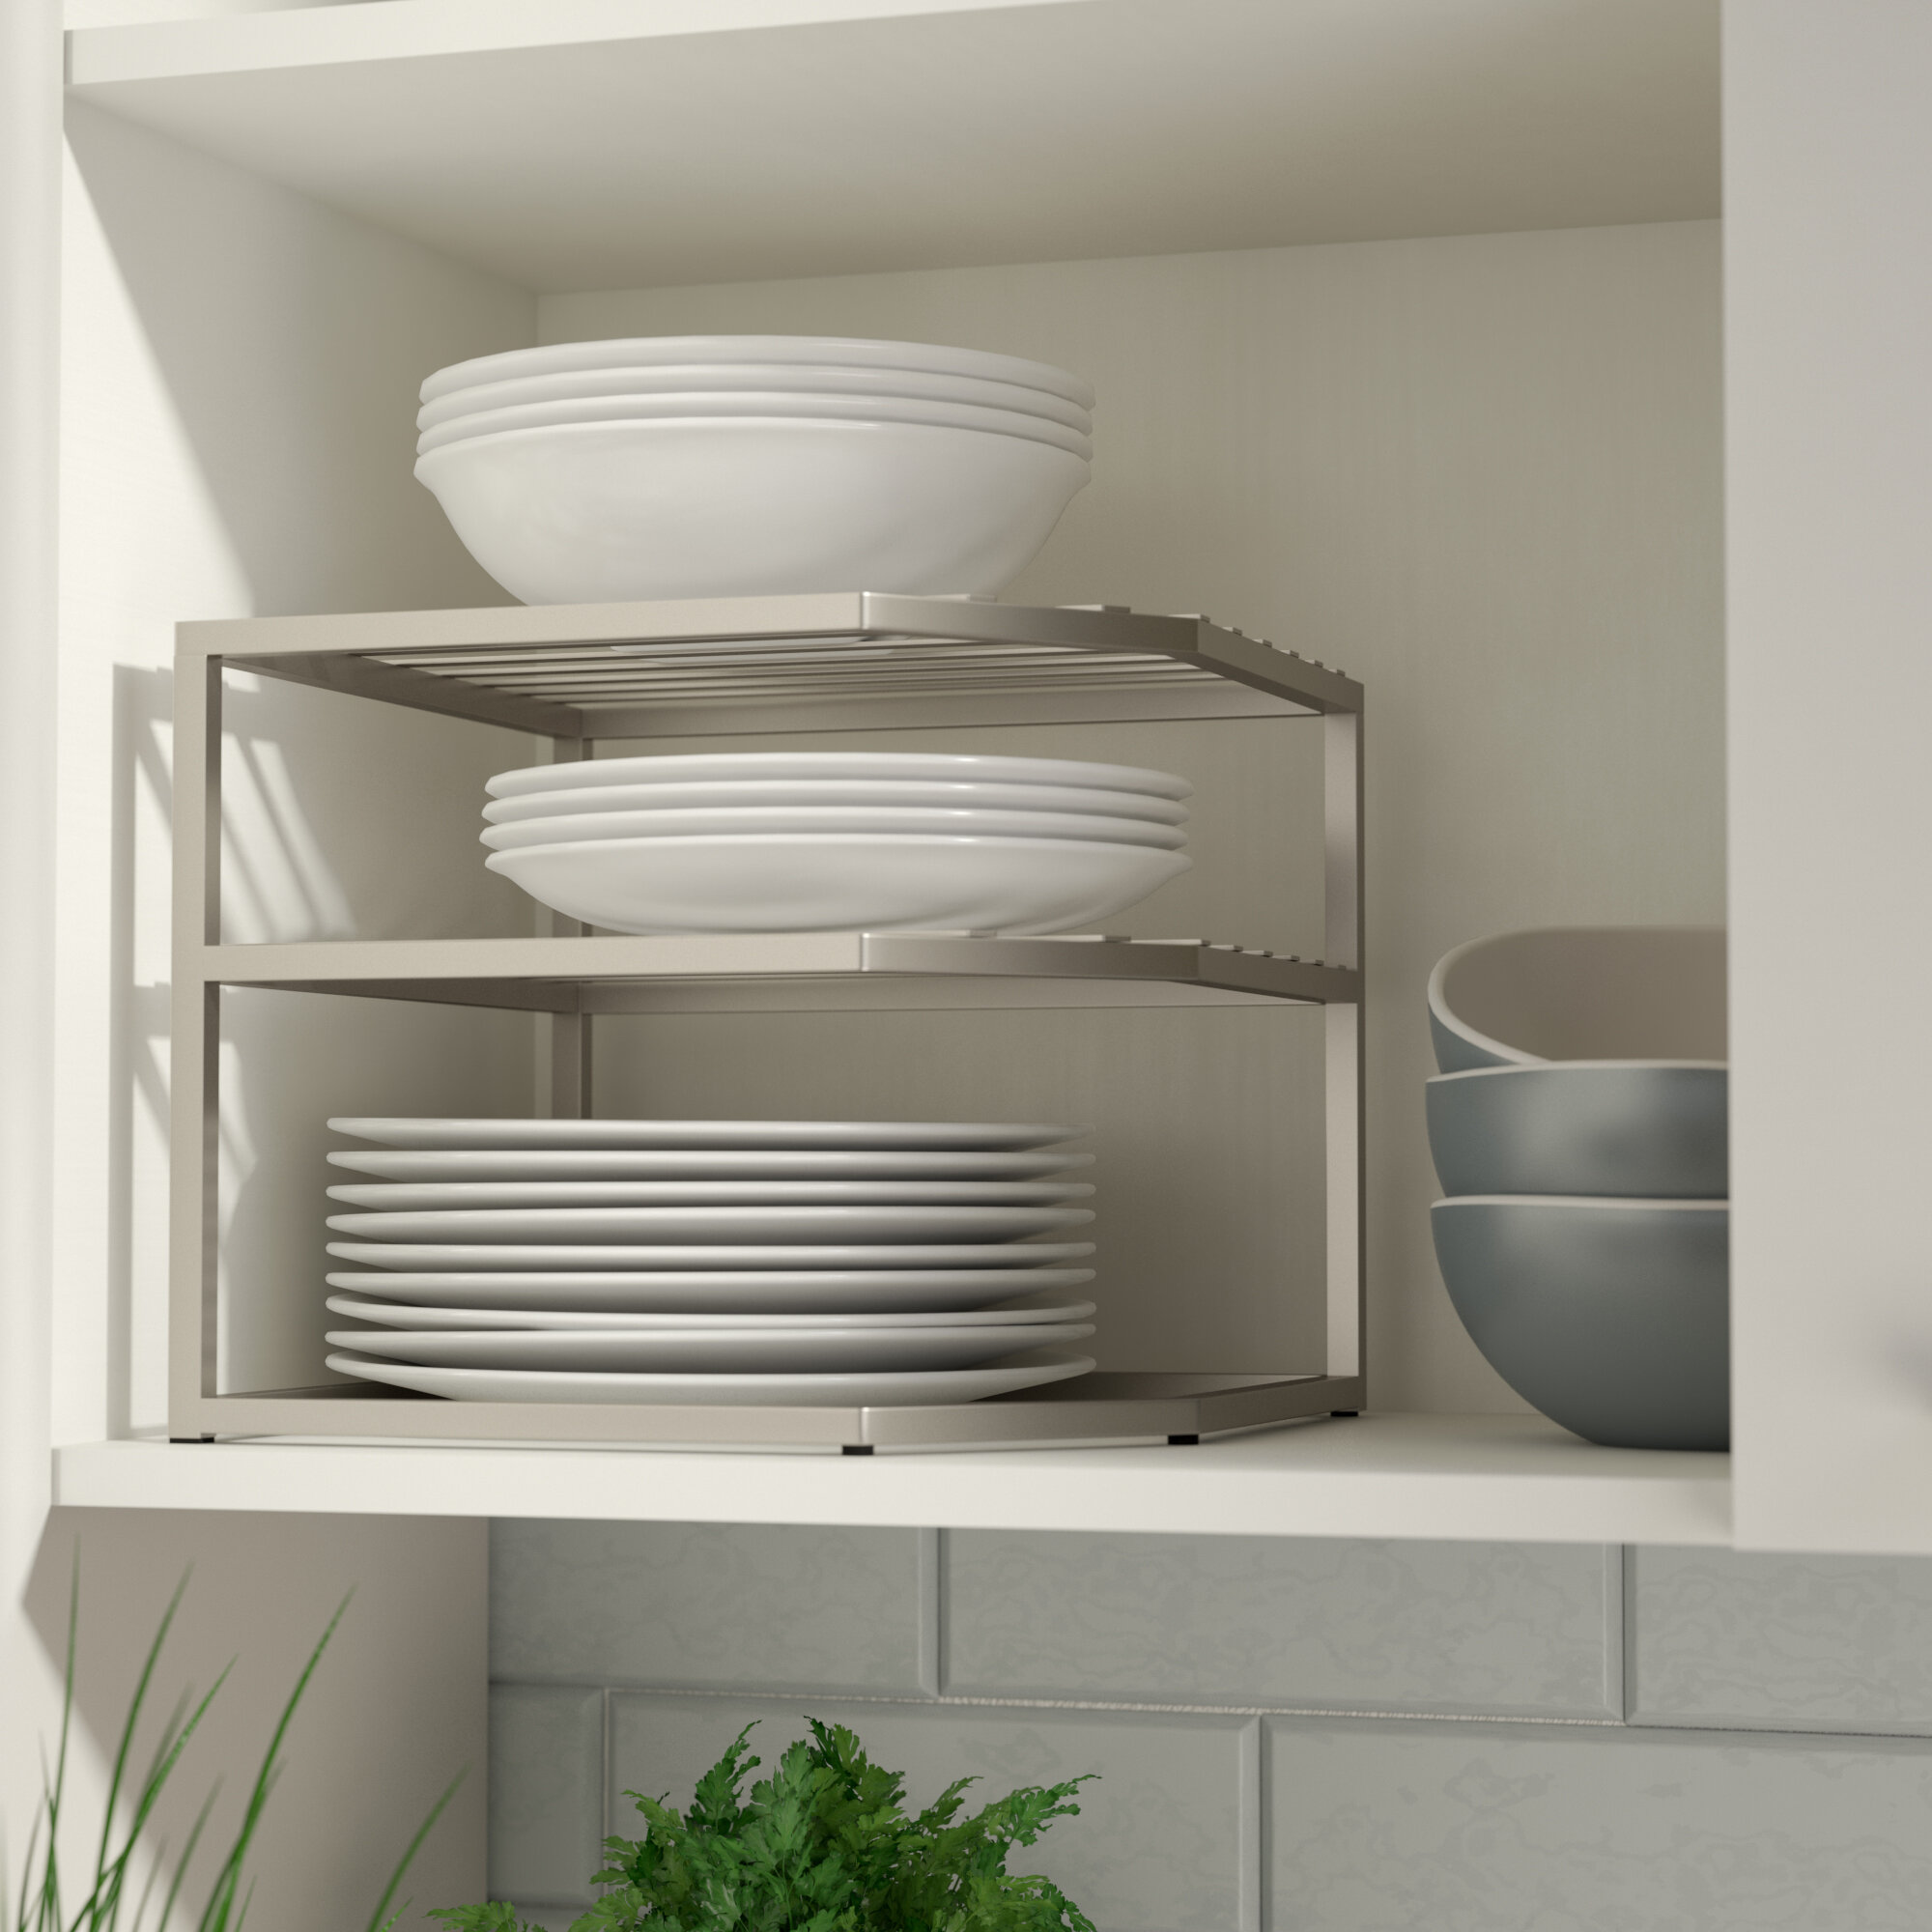 Rebrilliant Prevatte Corner Kitchen Cabinet Organizer Rack Reviews Wayfair